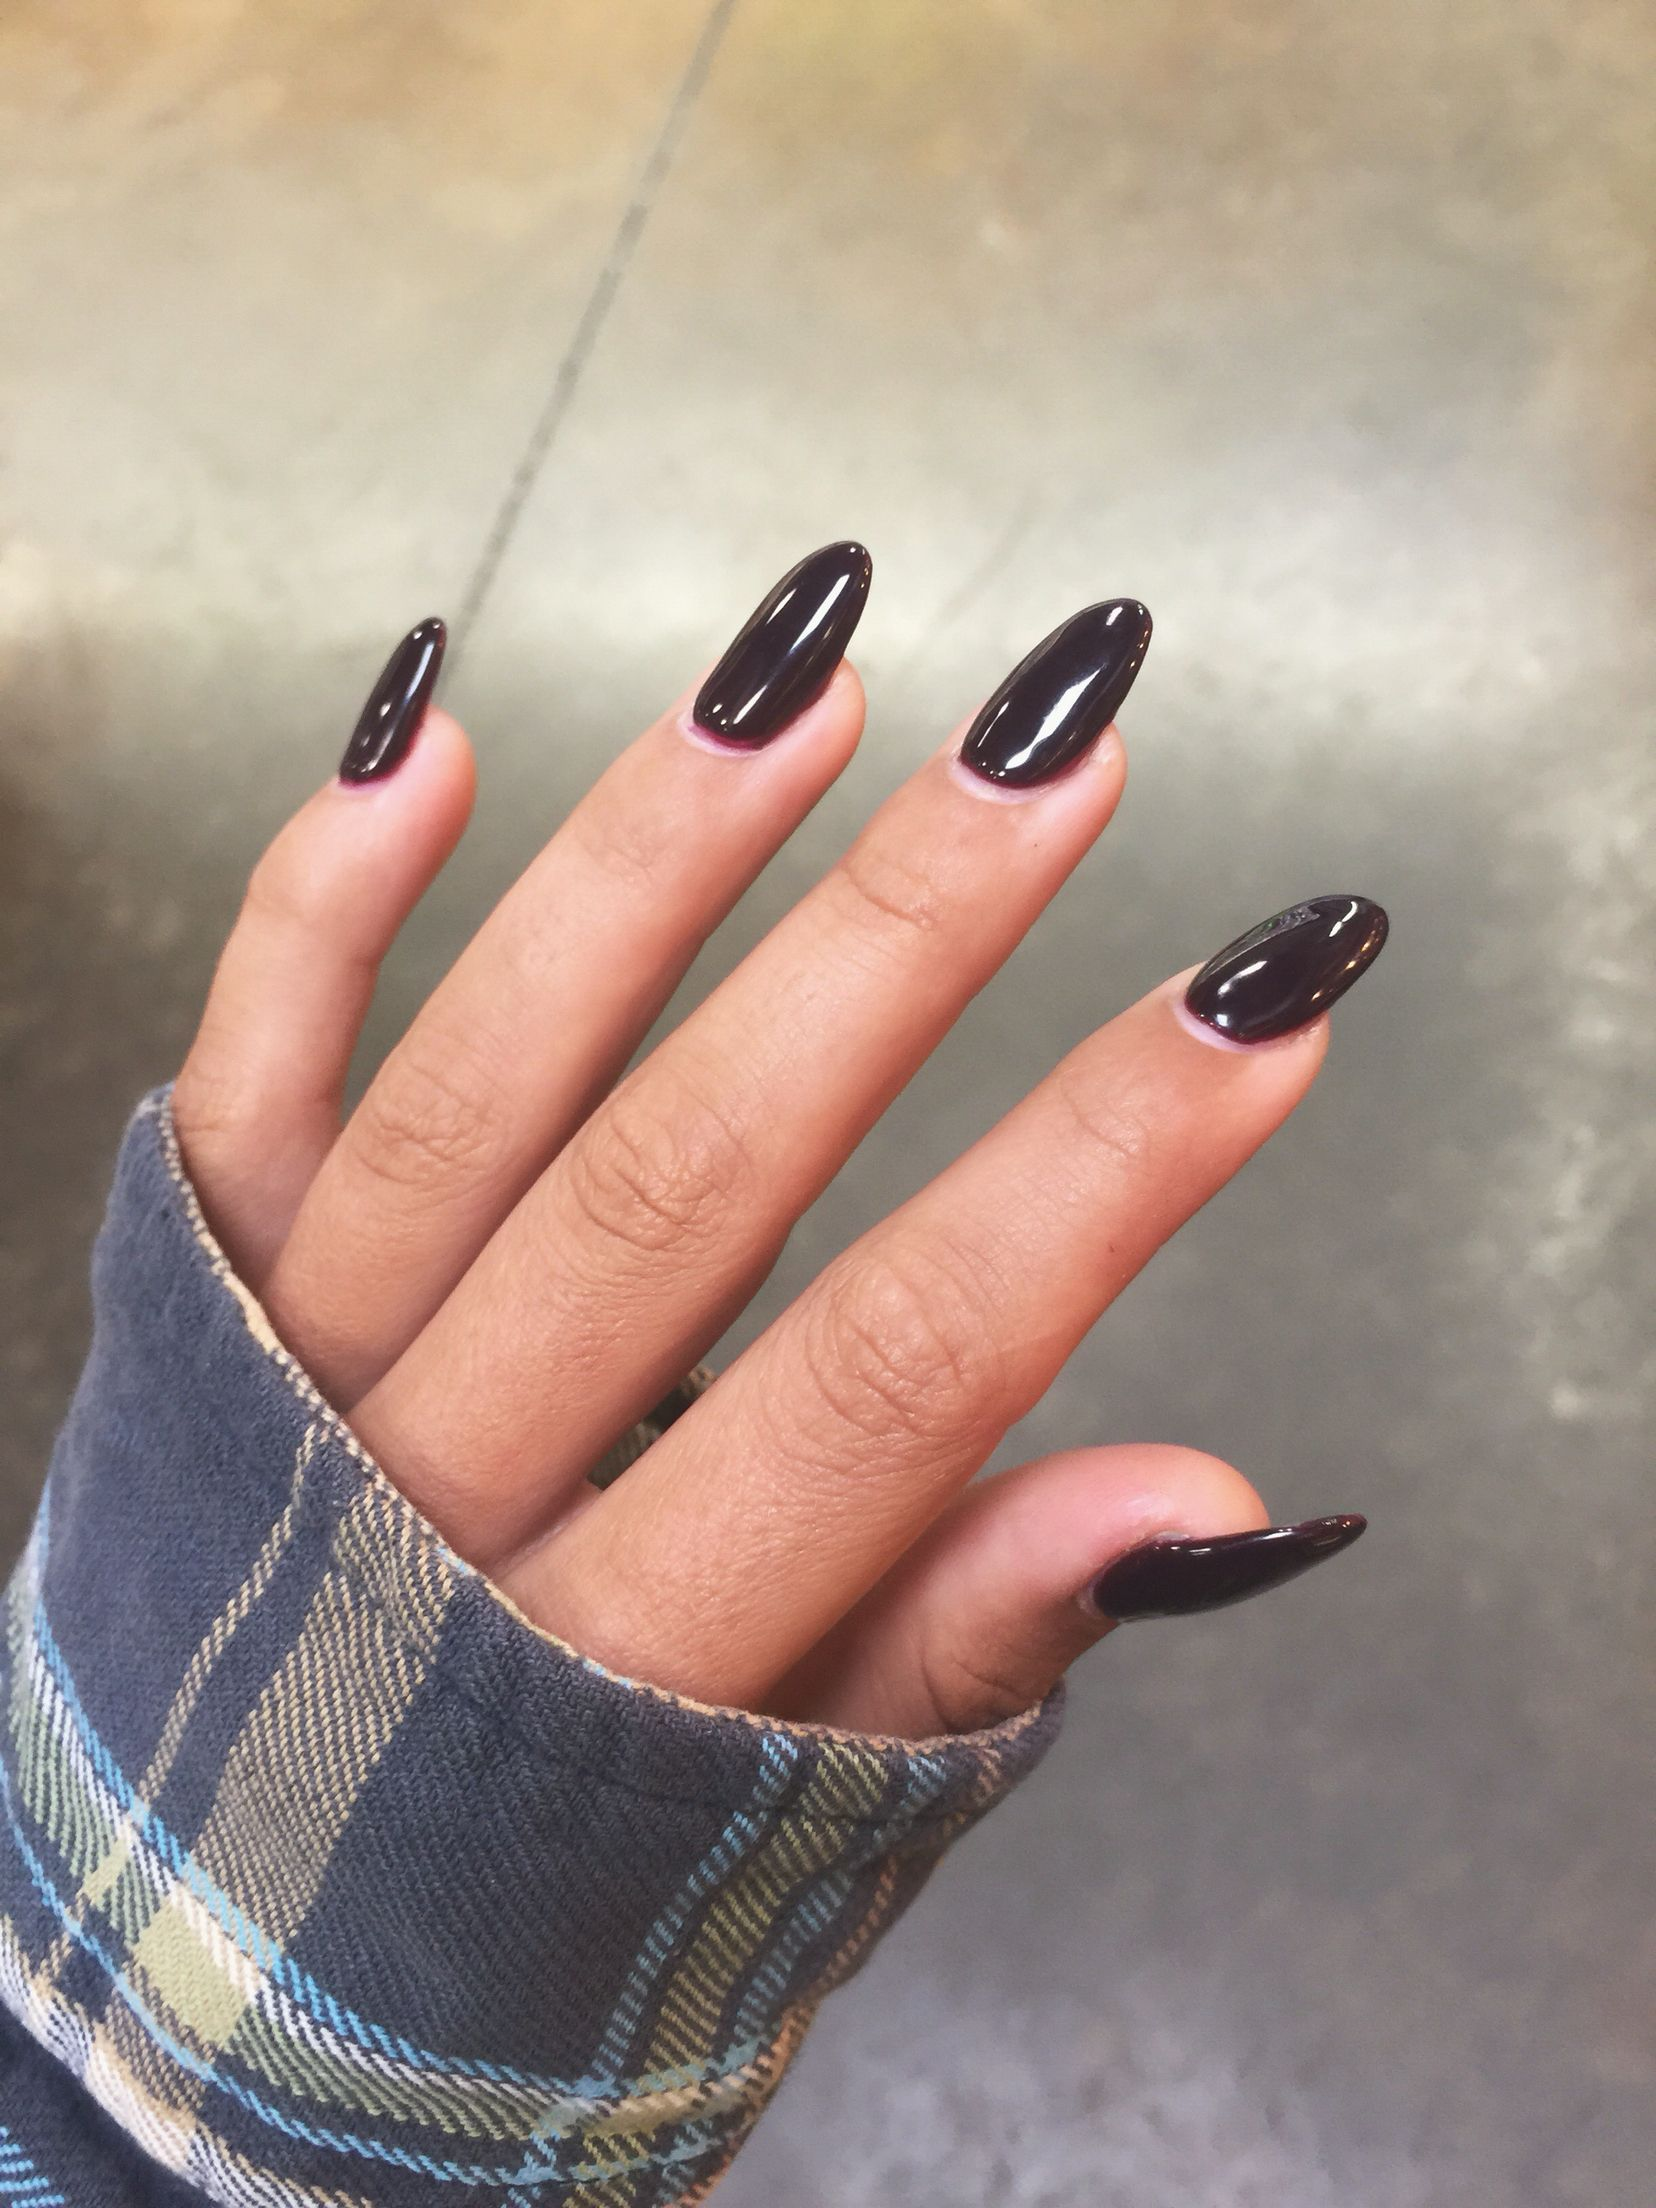 Long oval/almond burgundy dark red acrylic nails | n a i l s ...